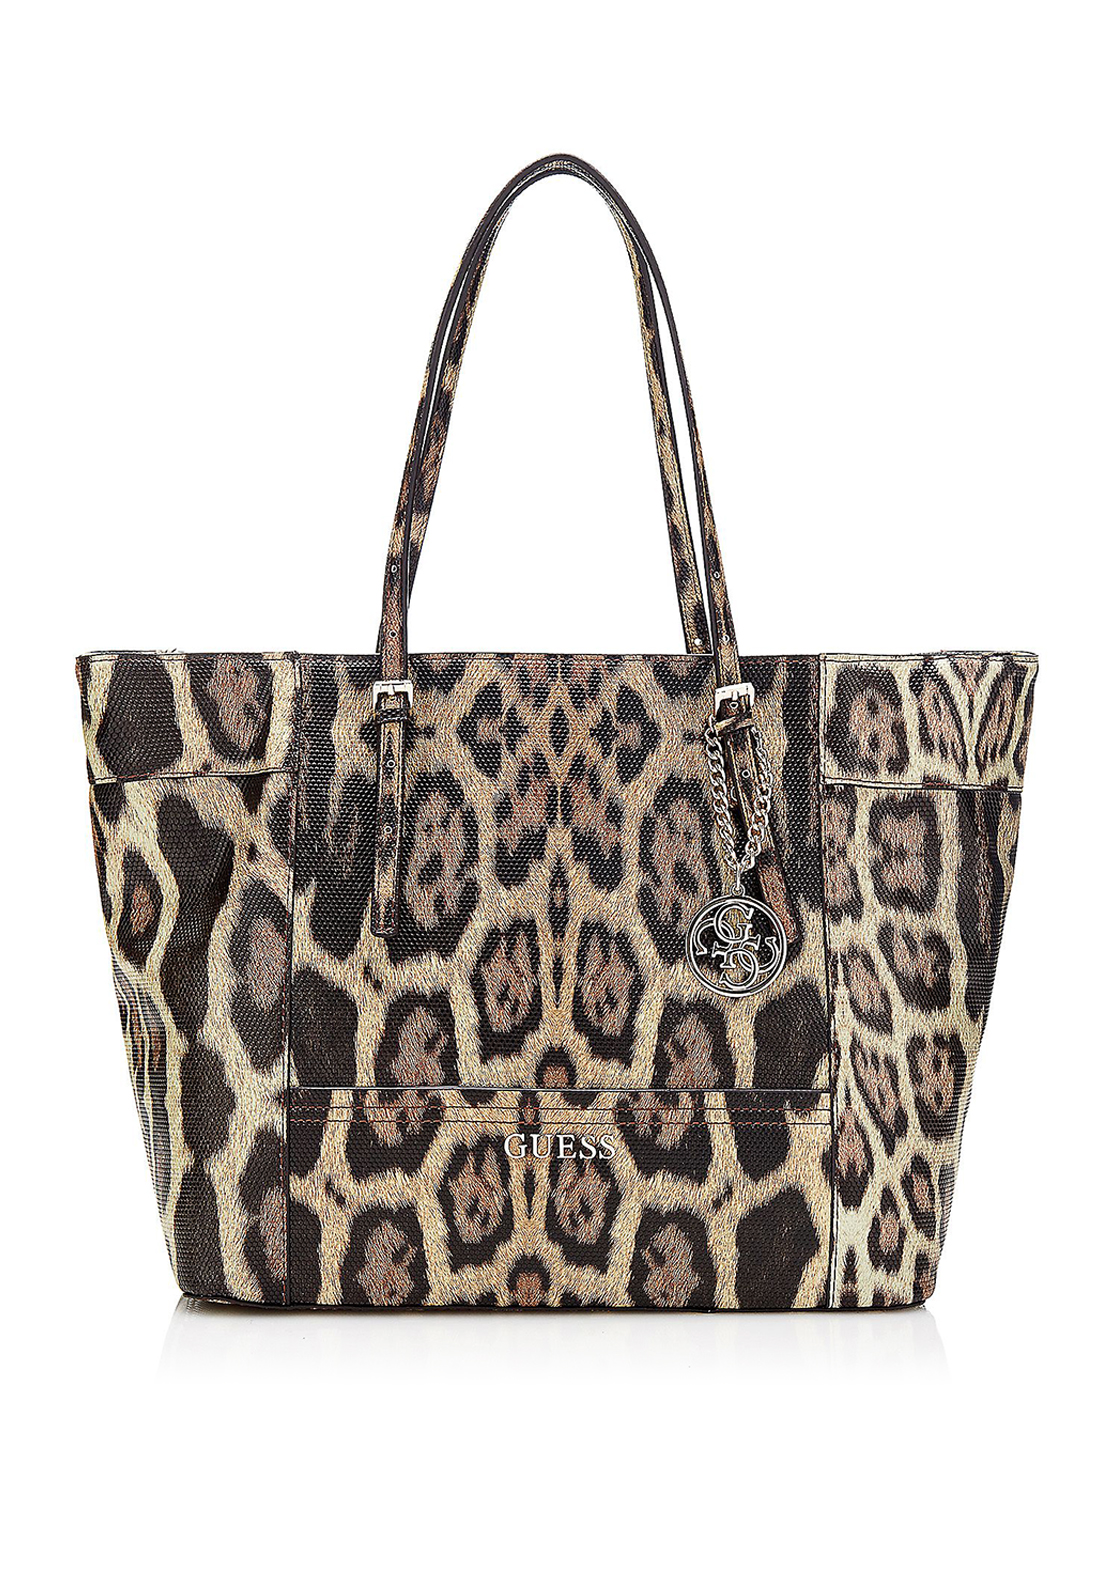 Guess Delaney Leopard Print Tote Bag, Multi